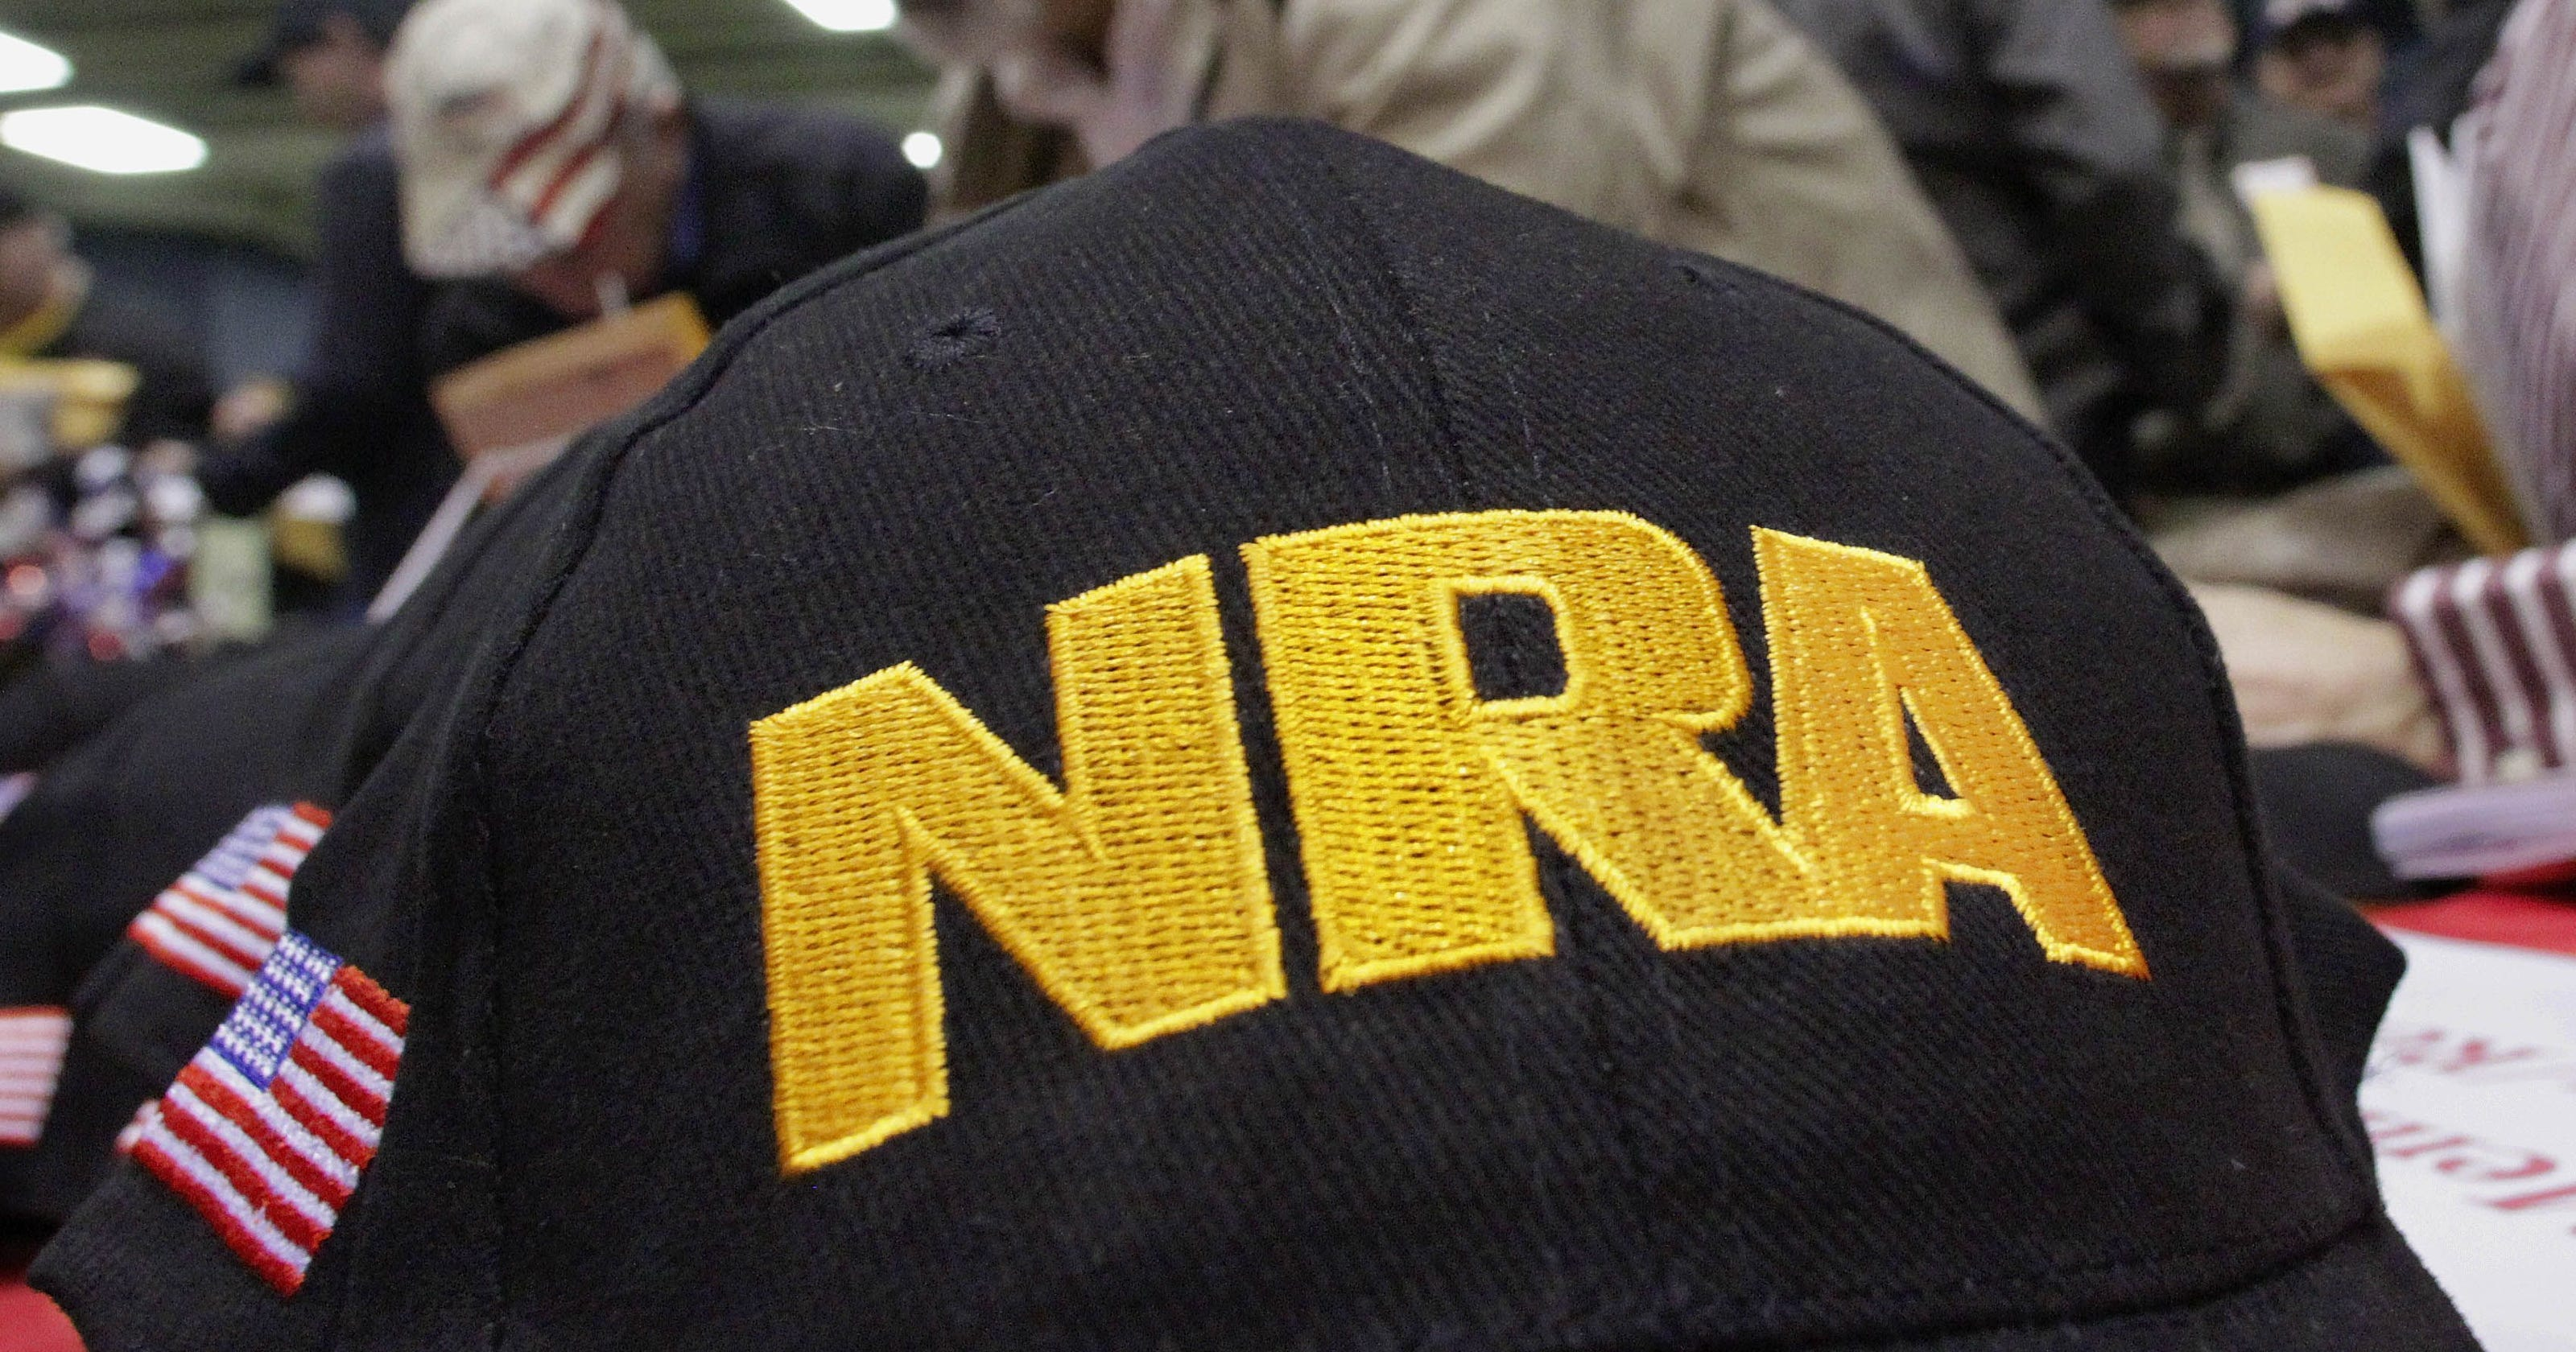 NRA fallout  Companies cut ties after Parkland 14c04a7680cd